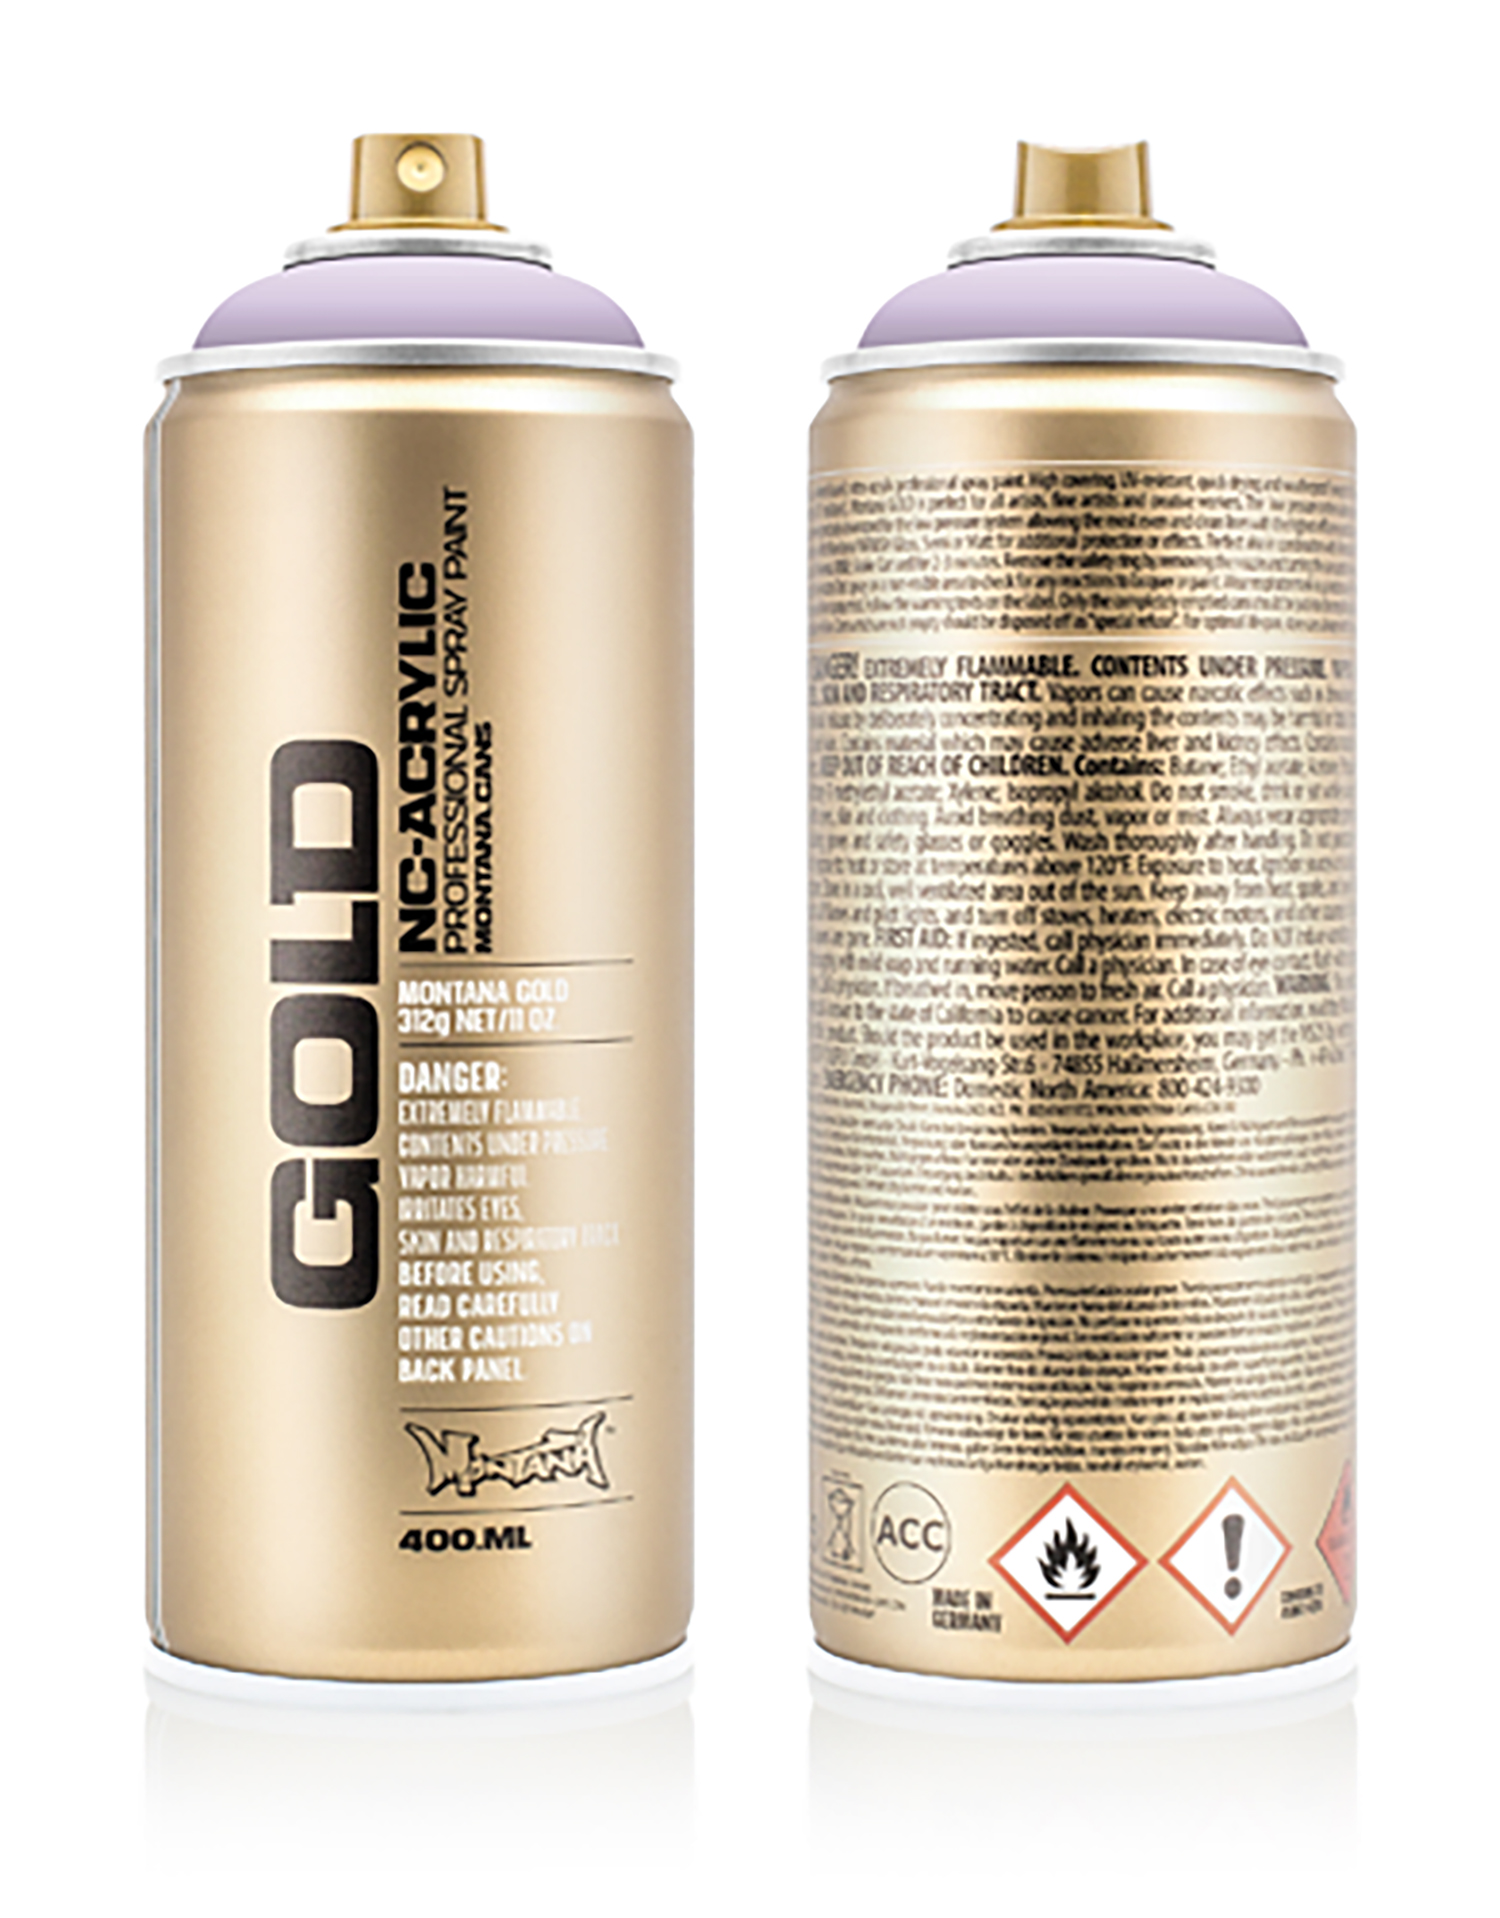 MONTANA-GOLD-SPRAY-400ML-G-4100